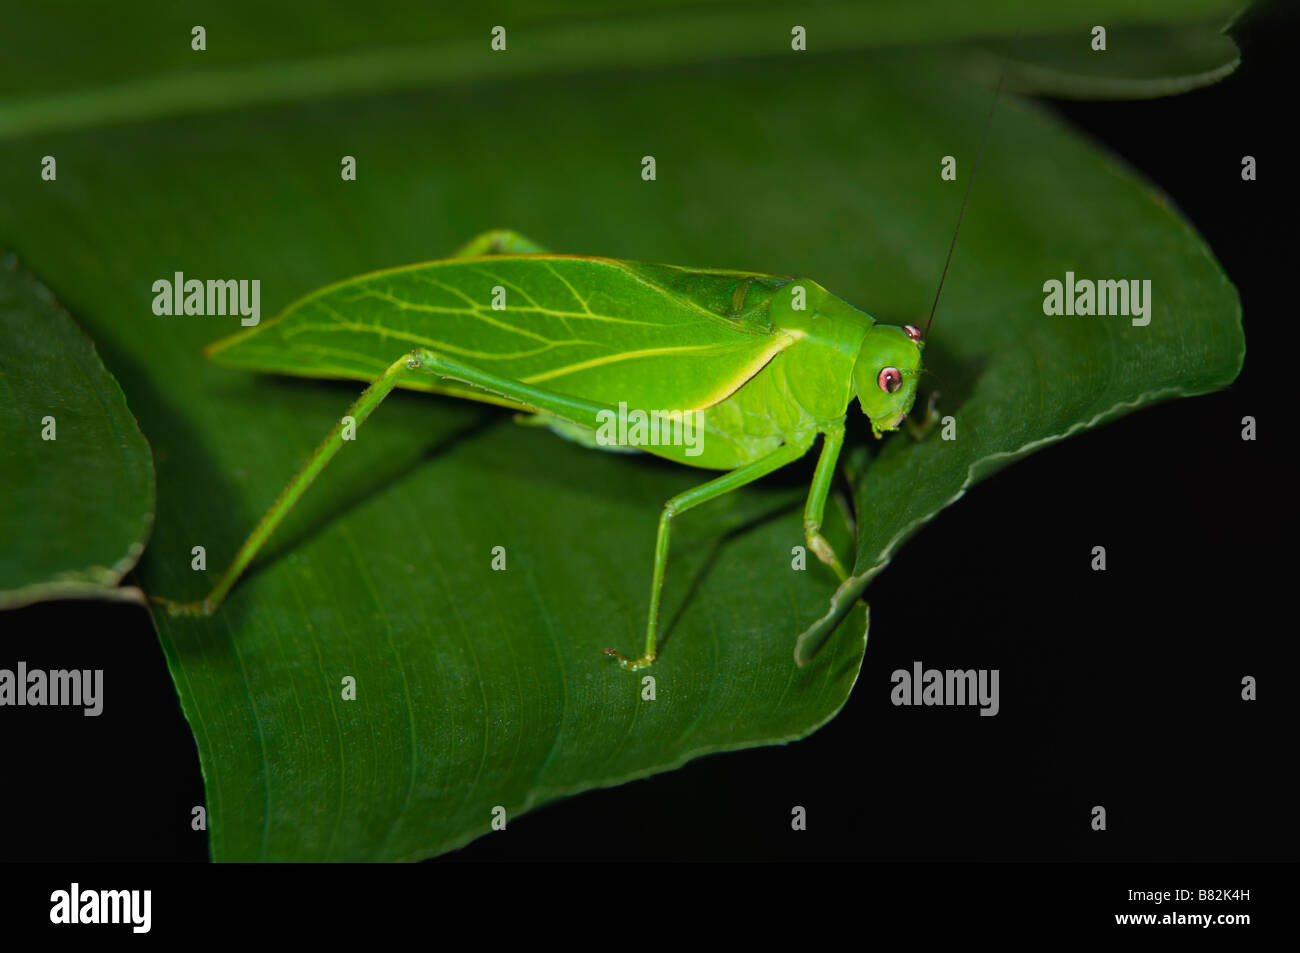 Oblong winged Katydid on leaf, Costa Rica - Stock Image